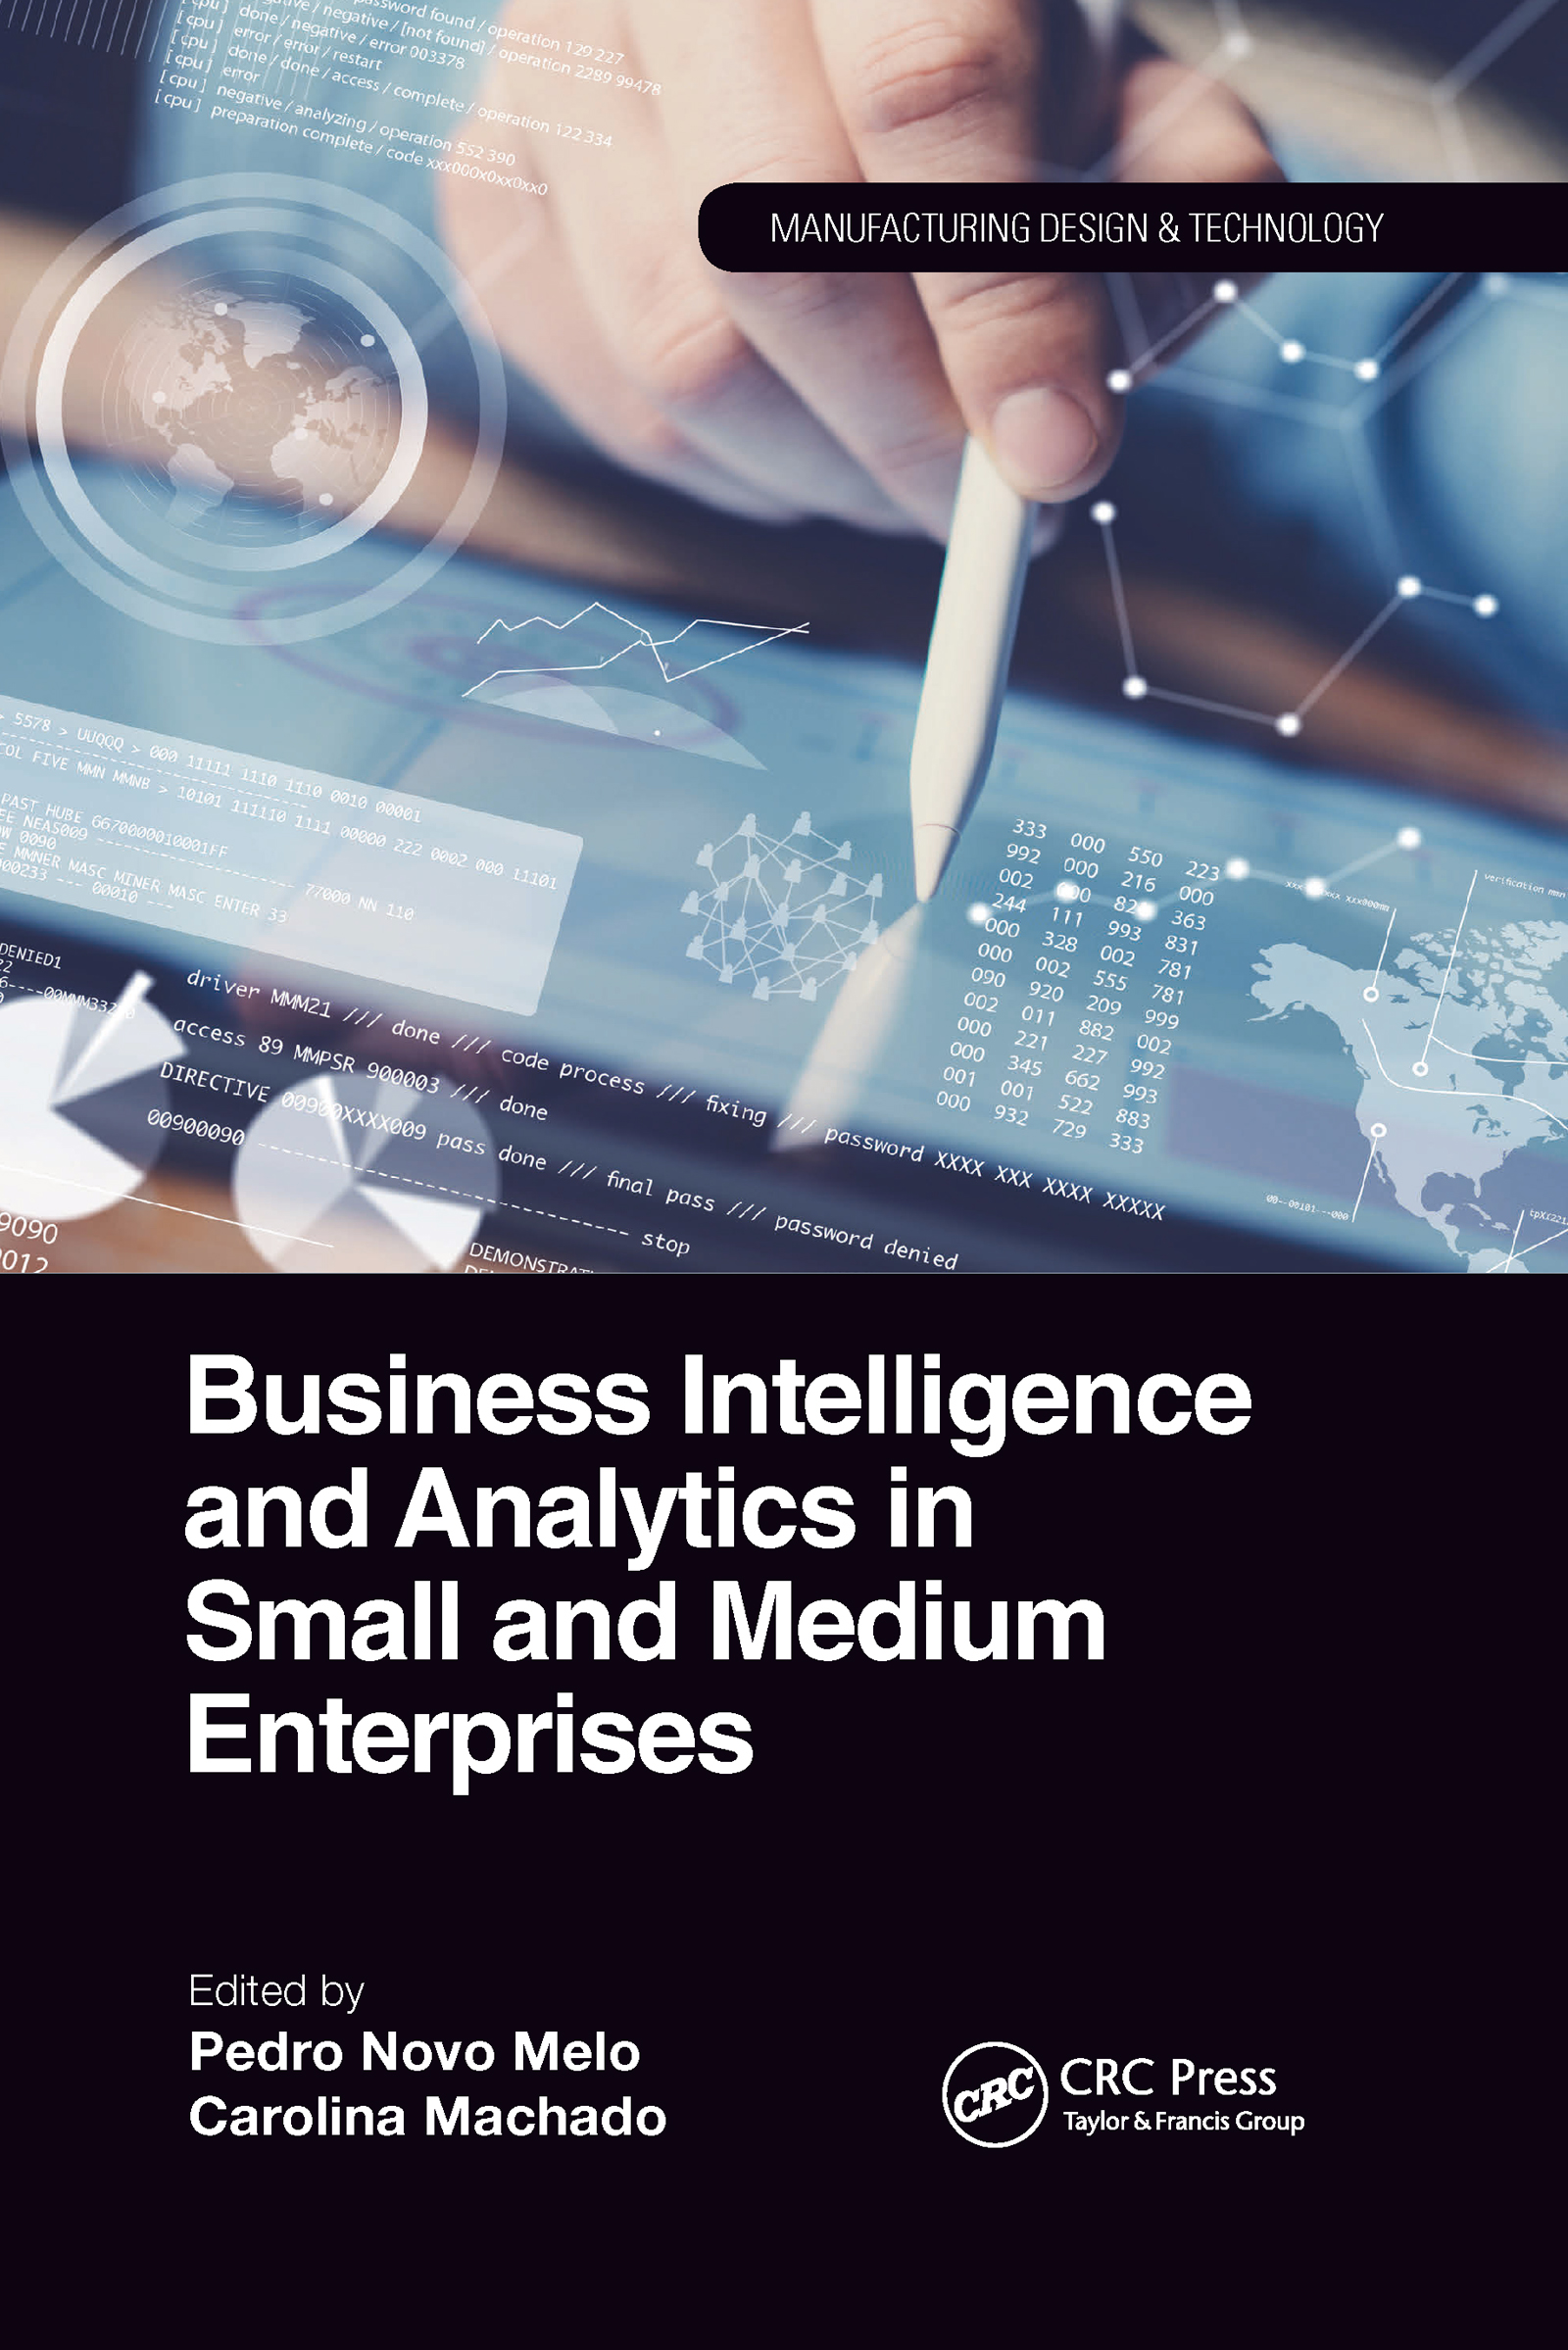 Business Intelligence and Analytics in Small and Medium Enterprises